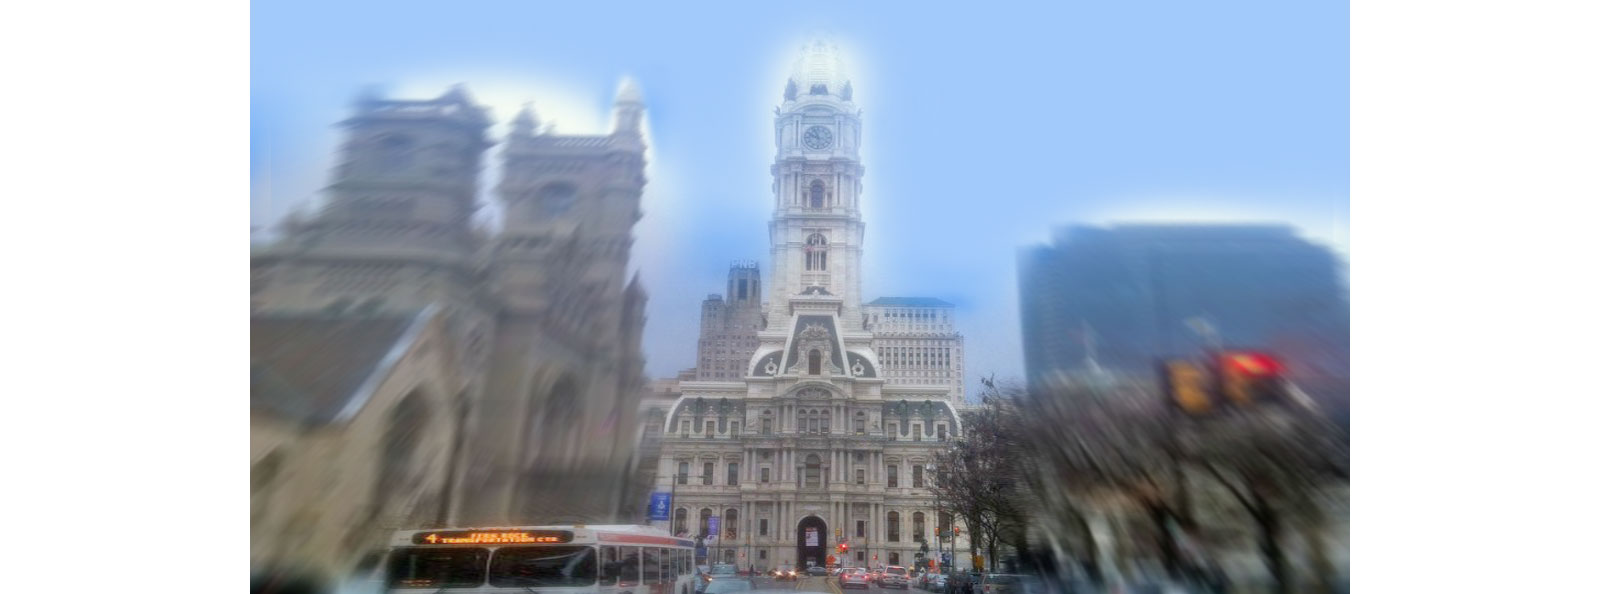 city-hall-fullsizerender-2